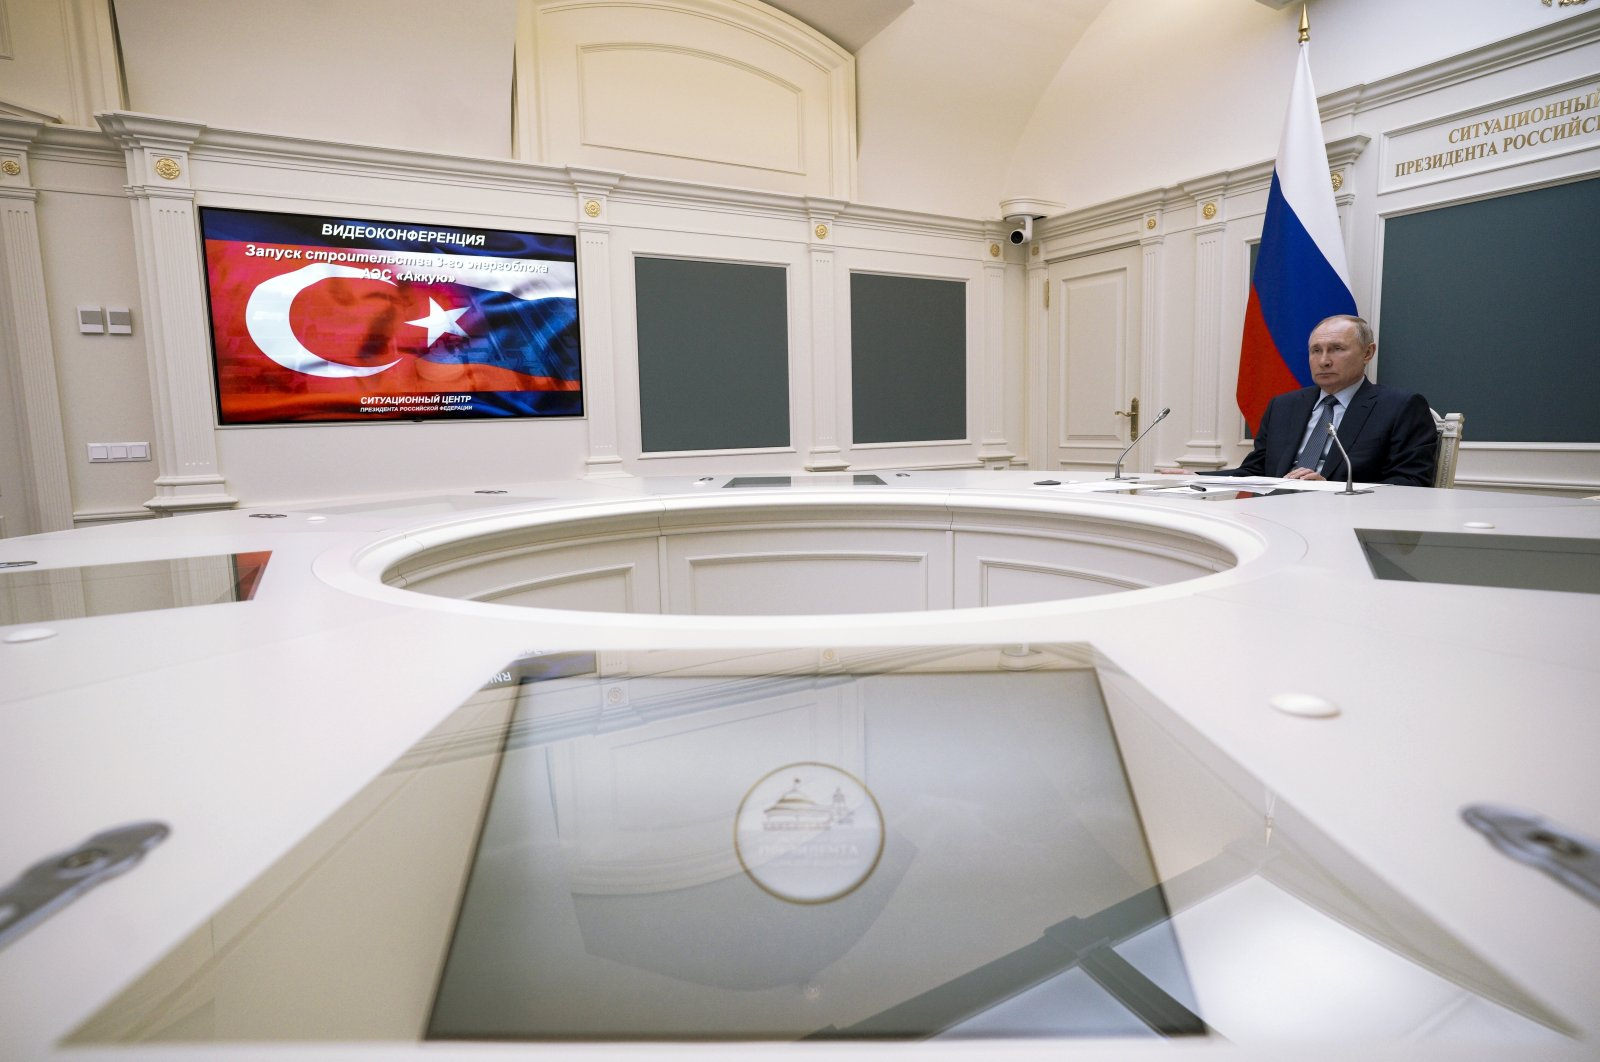 Russian President Vladimir Putin takes part in a ceremony with his counterpart Recep Tayyip Erdoğan via videoconference, in Moscow, Russia, March 10, 2021. (AP Photo)